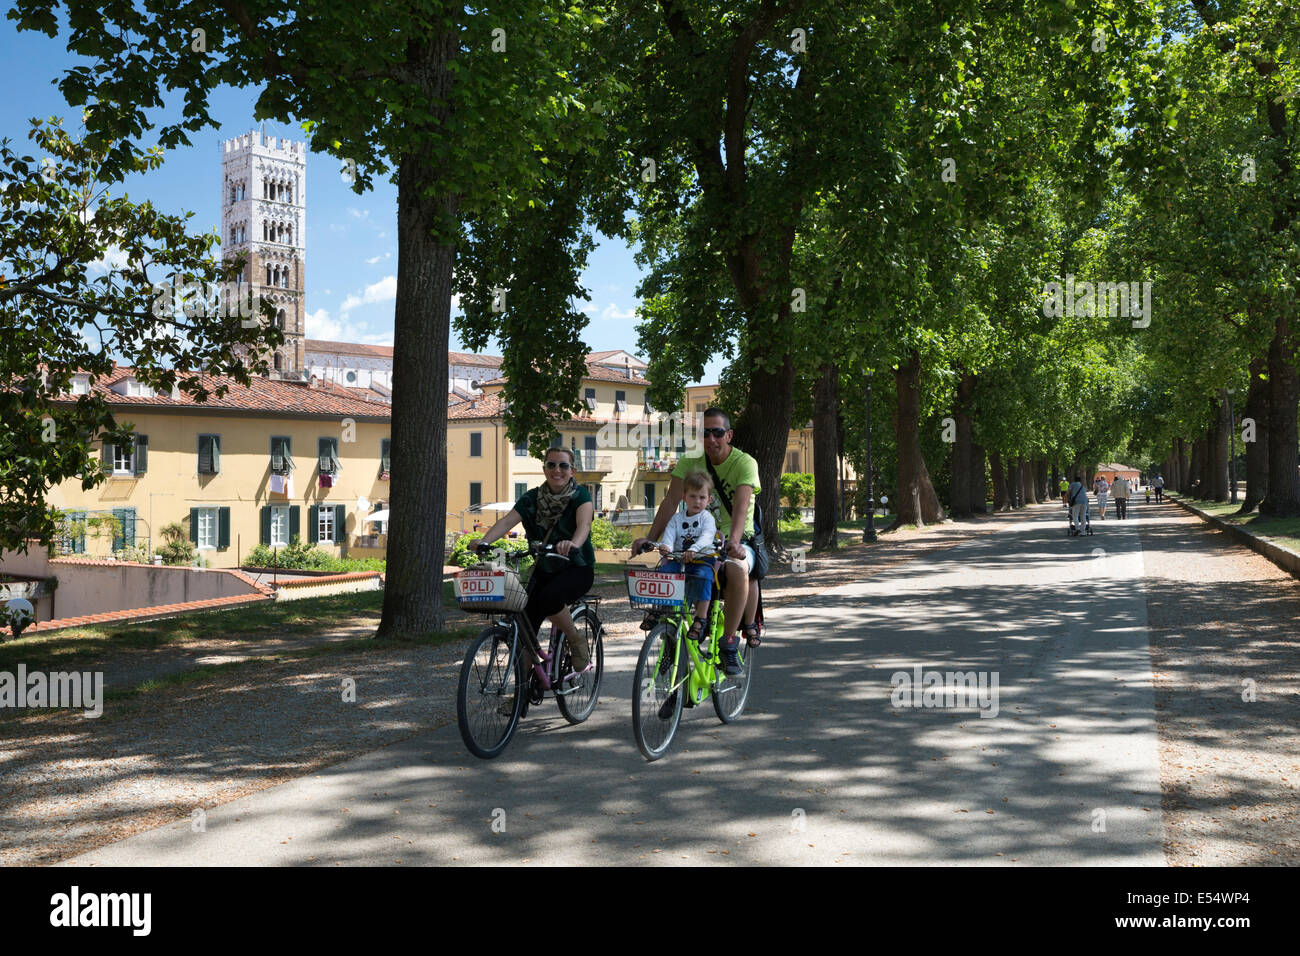 Cycling atop the city walls with the tower of the Duomo di San Martino, Lucca, Tuscany, Italy, Europe - Stock Image